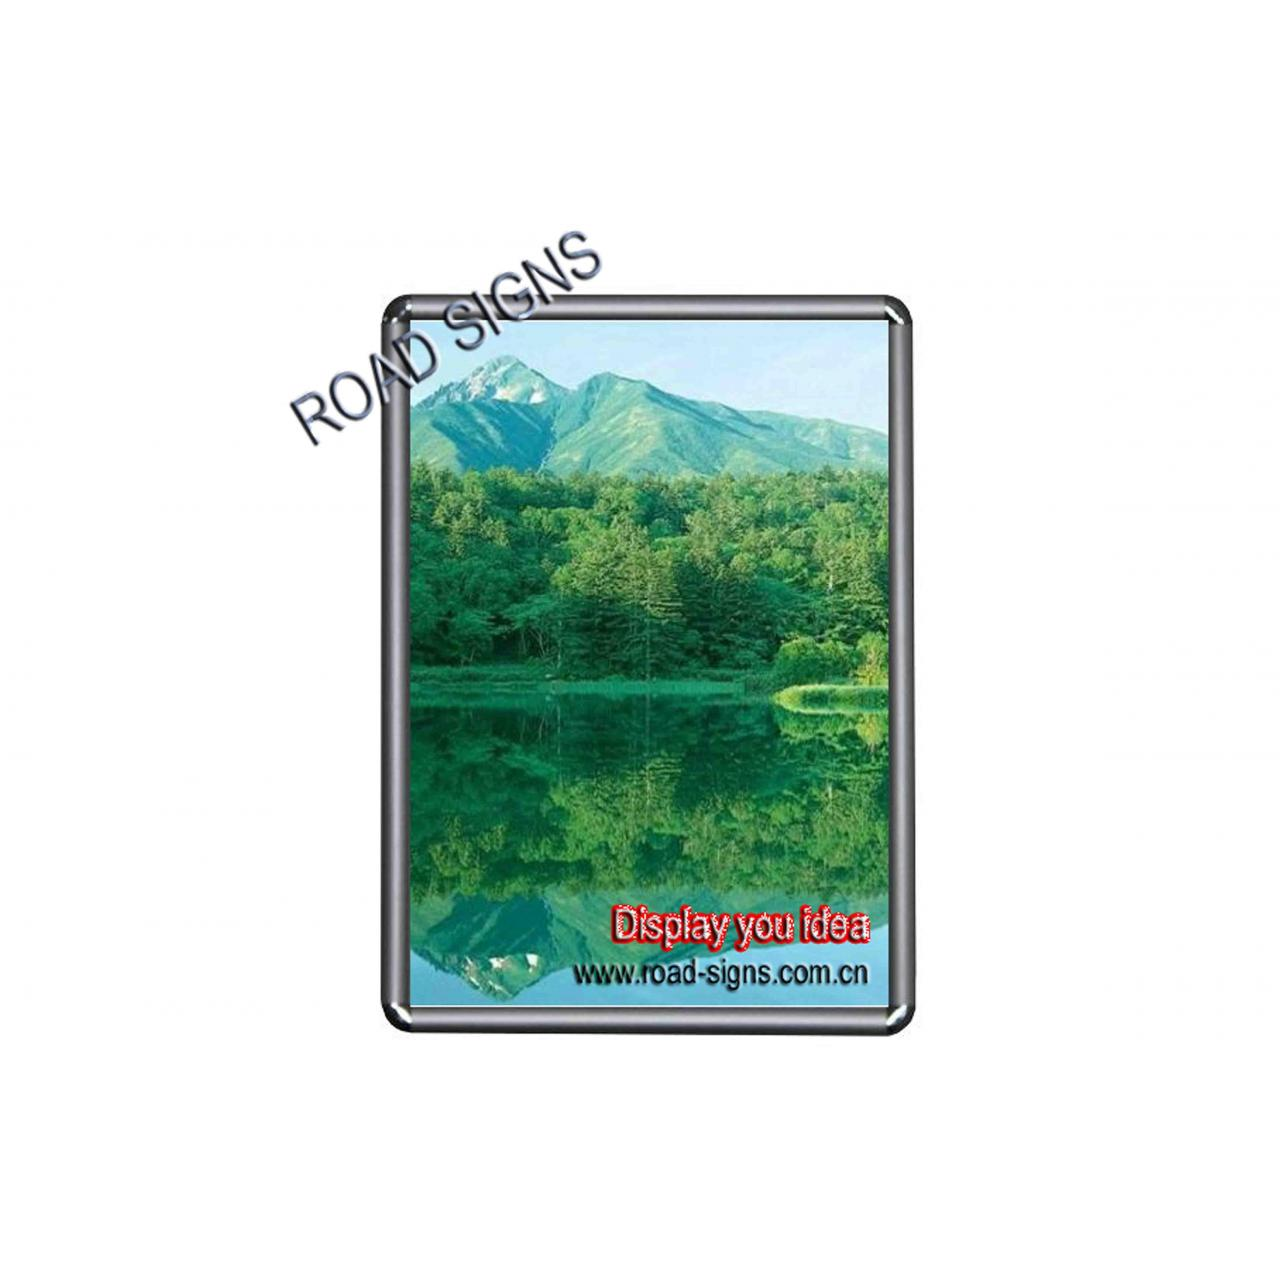 Snap poster frame RS-D-S01 Manufactures